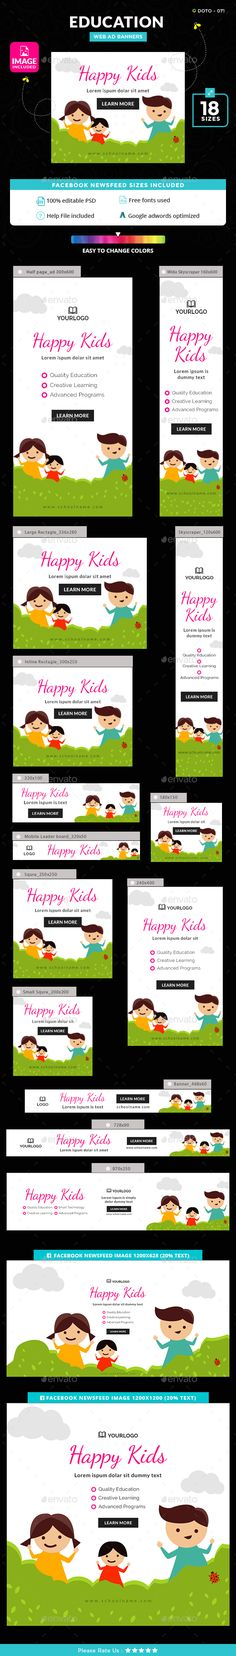 Education Banners Template PSD